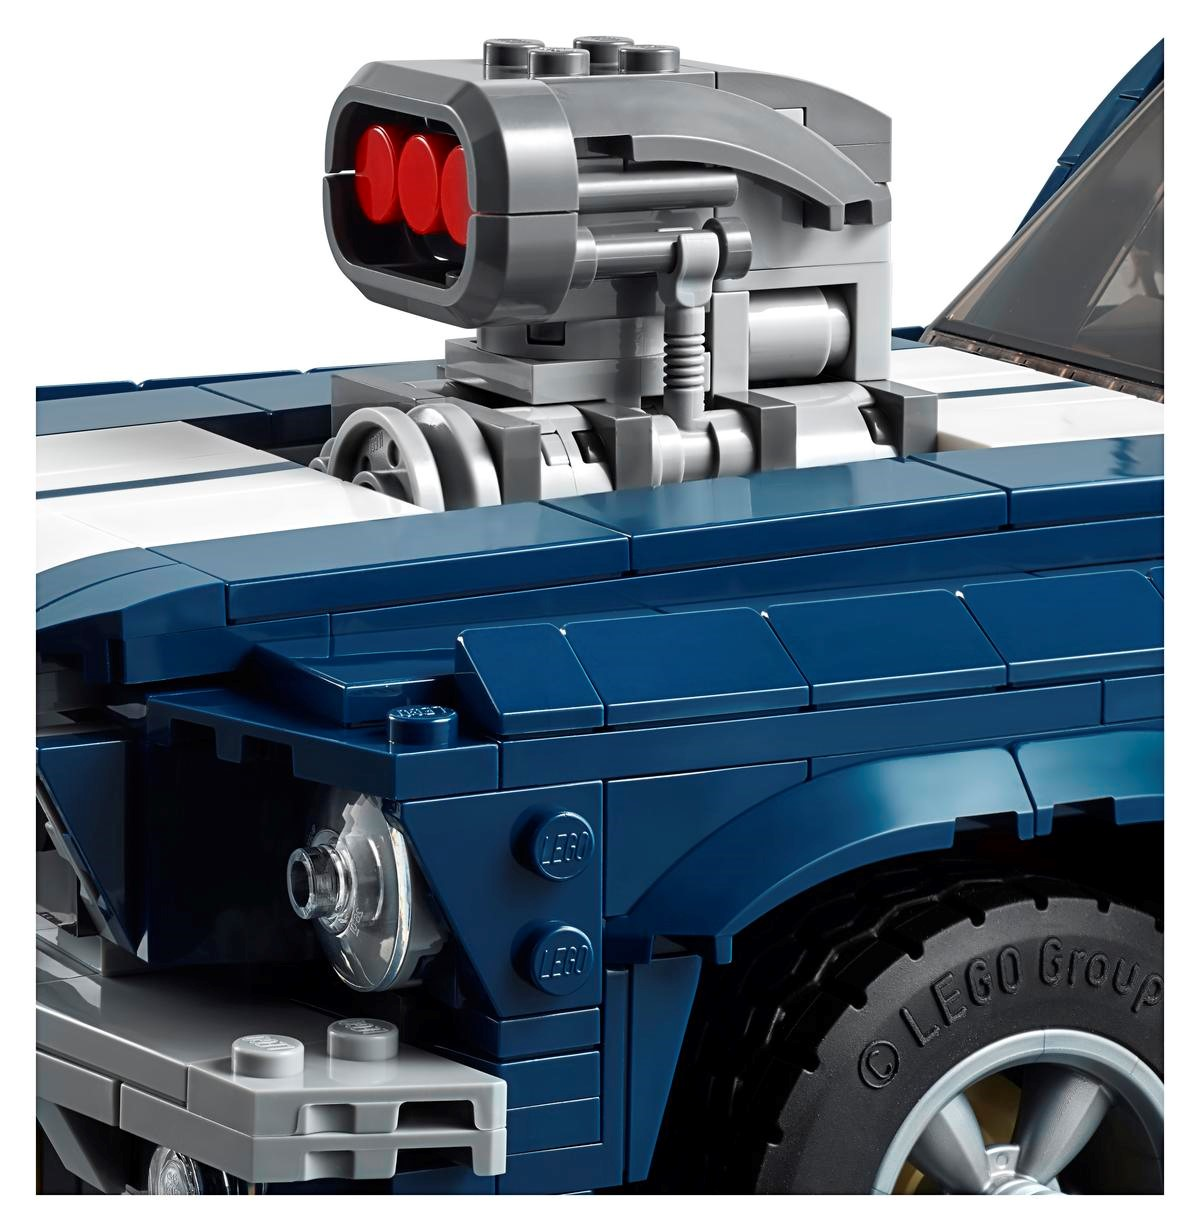 Ford-mustang-lego-creator-10265-set-22